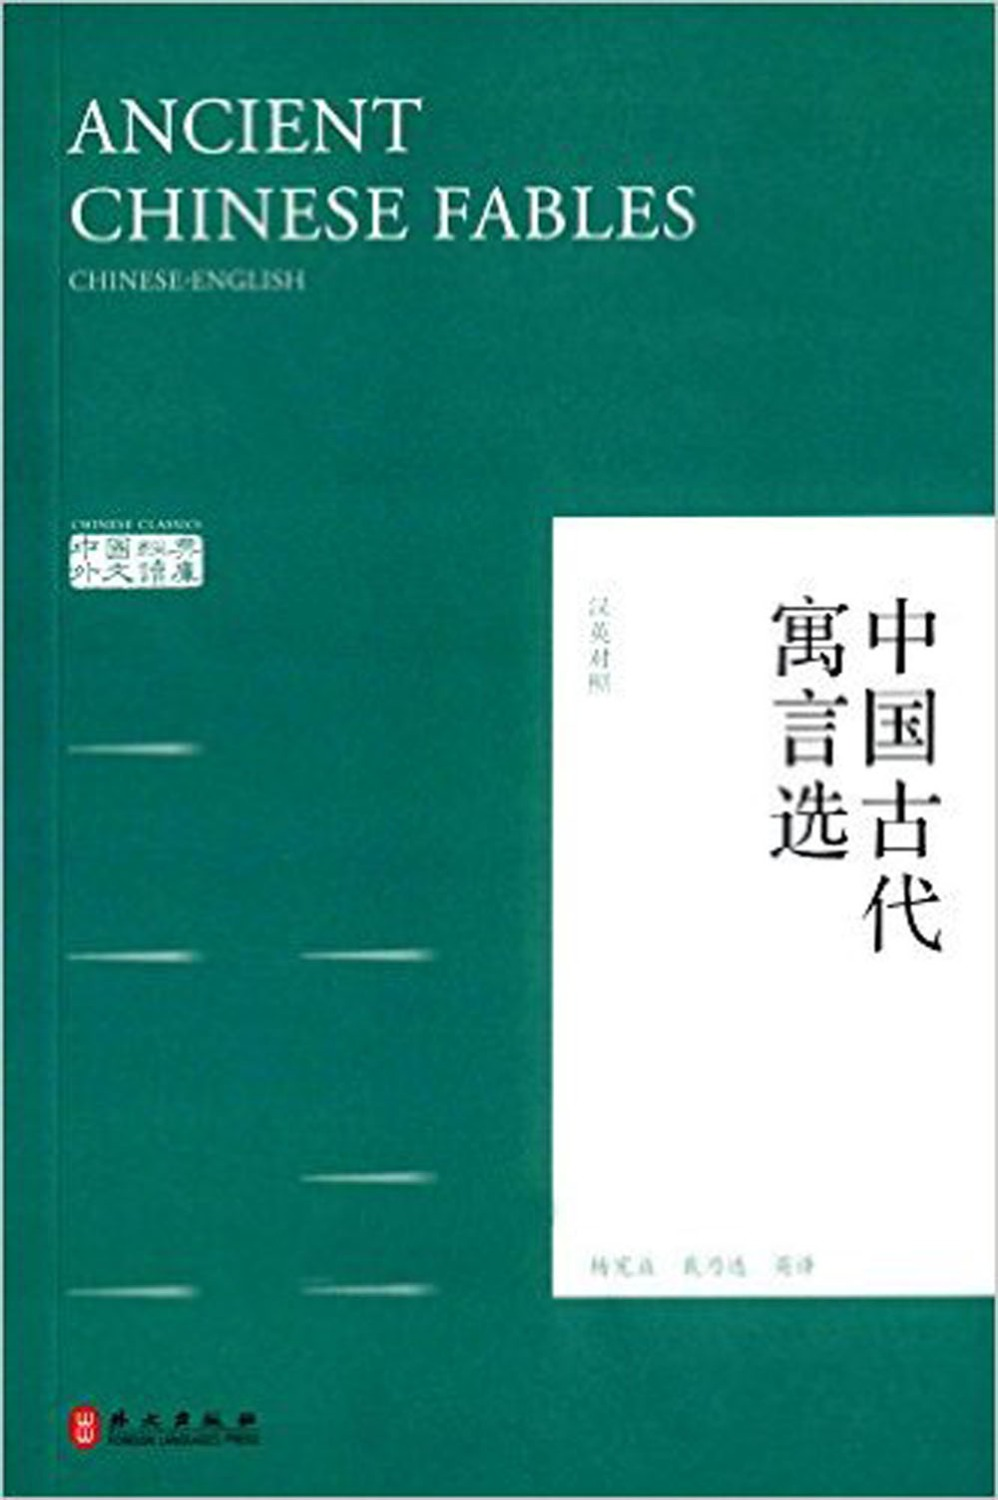 Chinese classics: Ancient Chinese Fables(Chinese-English)- bilingual<br>